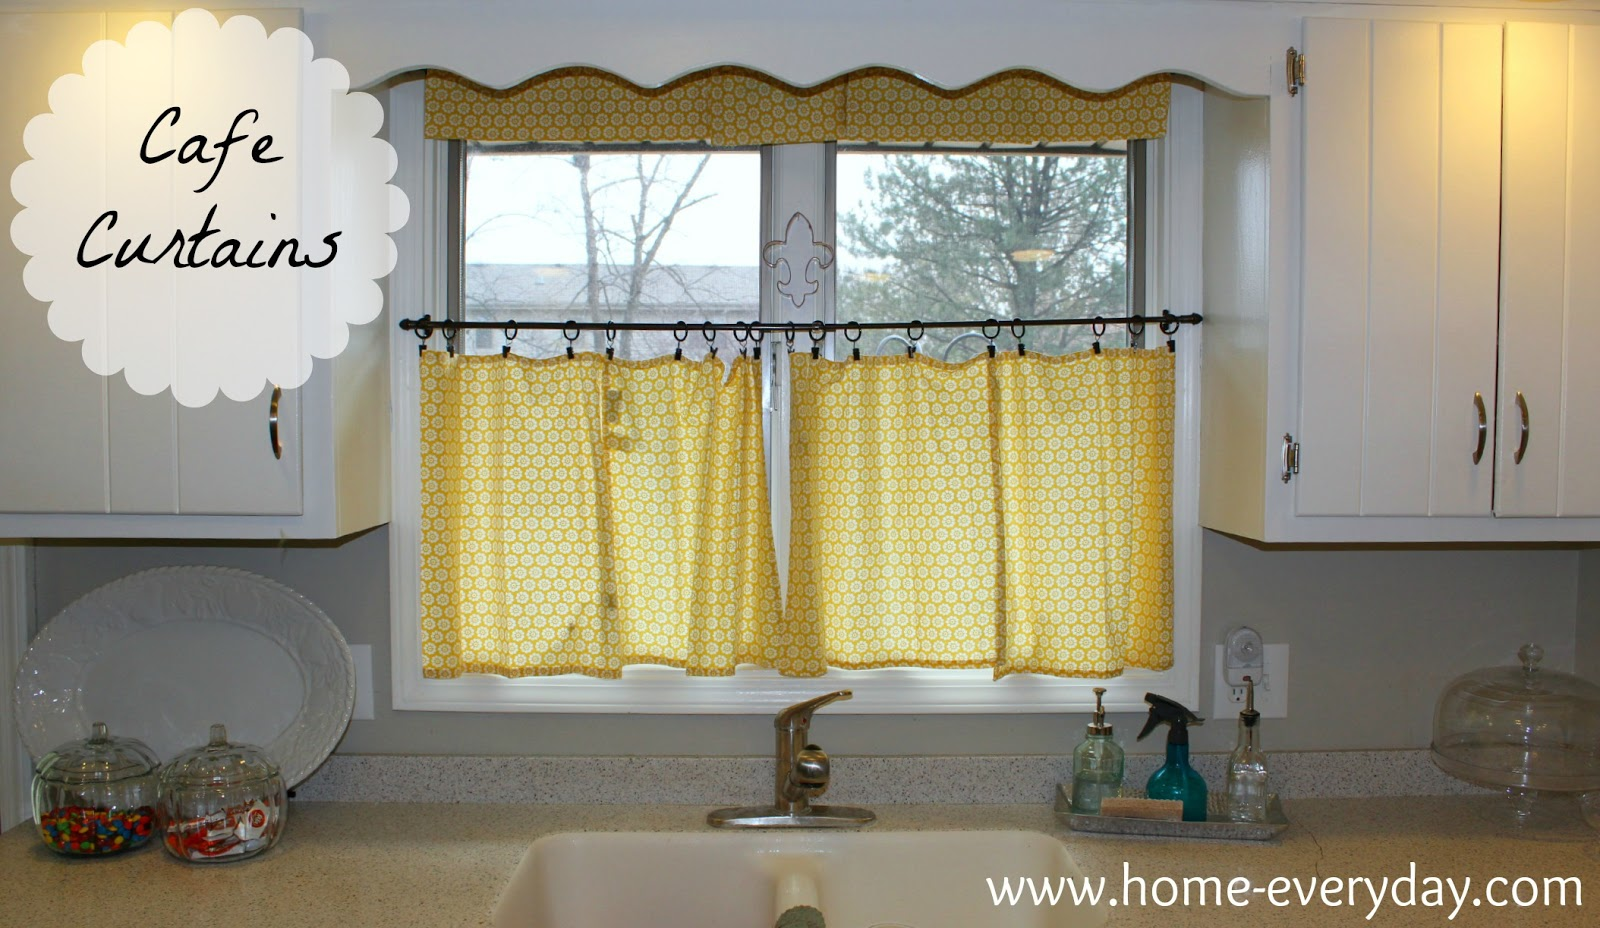 Election hangover quick fix curtains home everyday for Cafe curtains for kitchen ideas